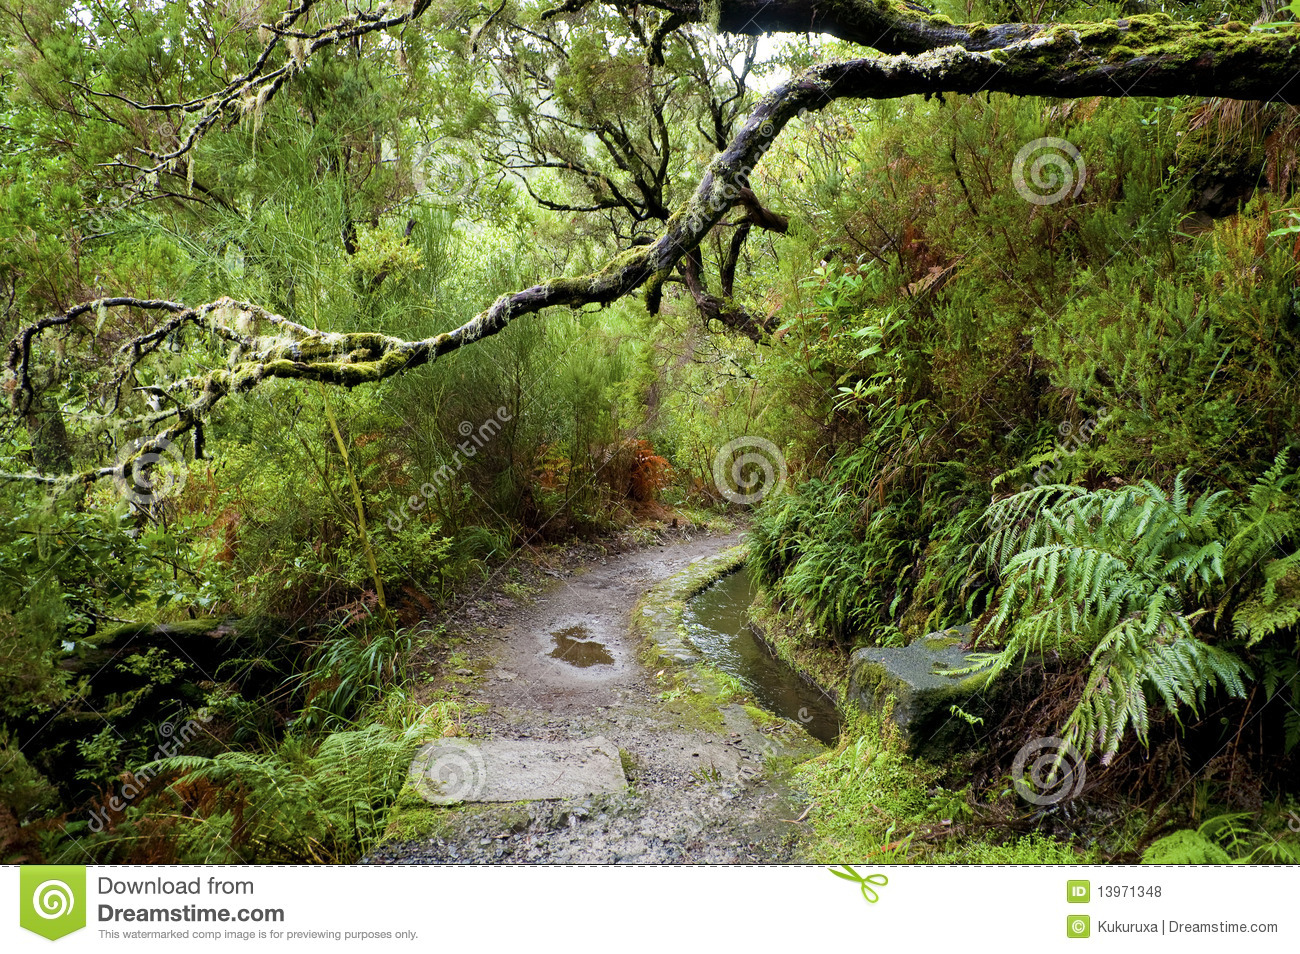 laurel forest on madeira royalty free stock photos image fantasy clip art drivethrurpg fantasy clipart free